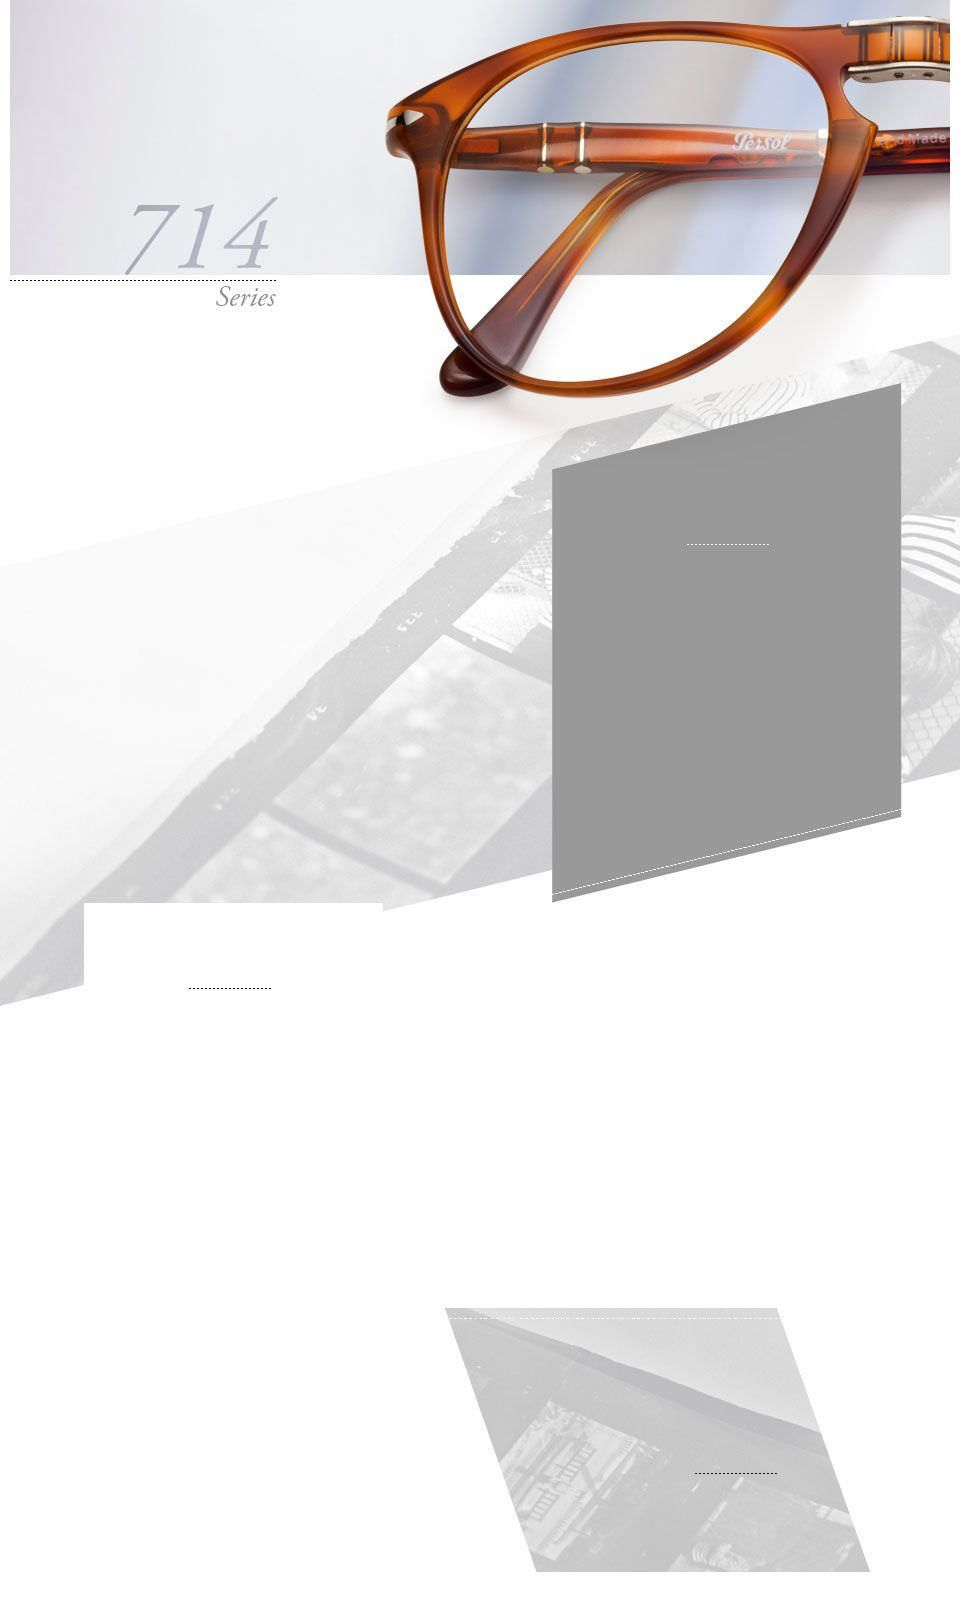 Persol 714 Series Background